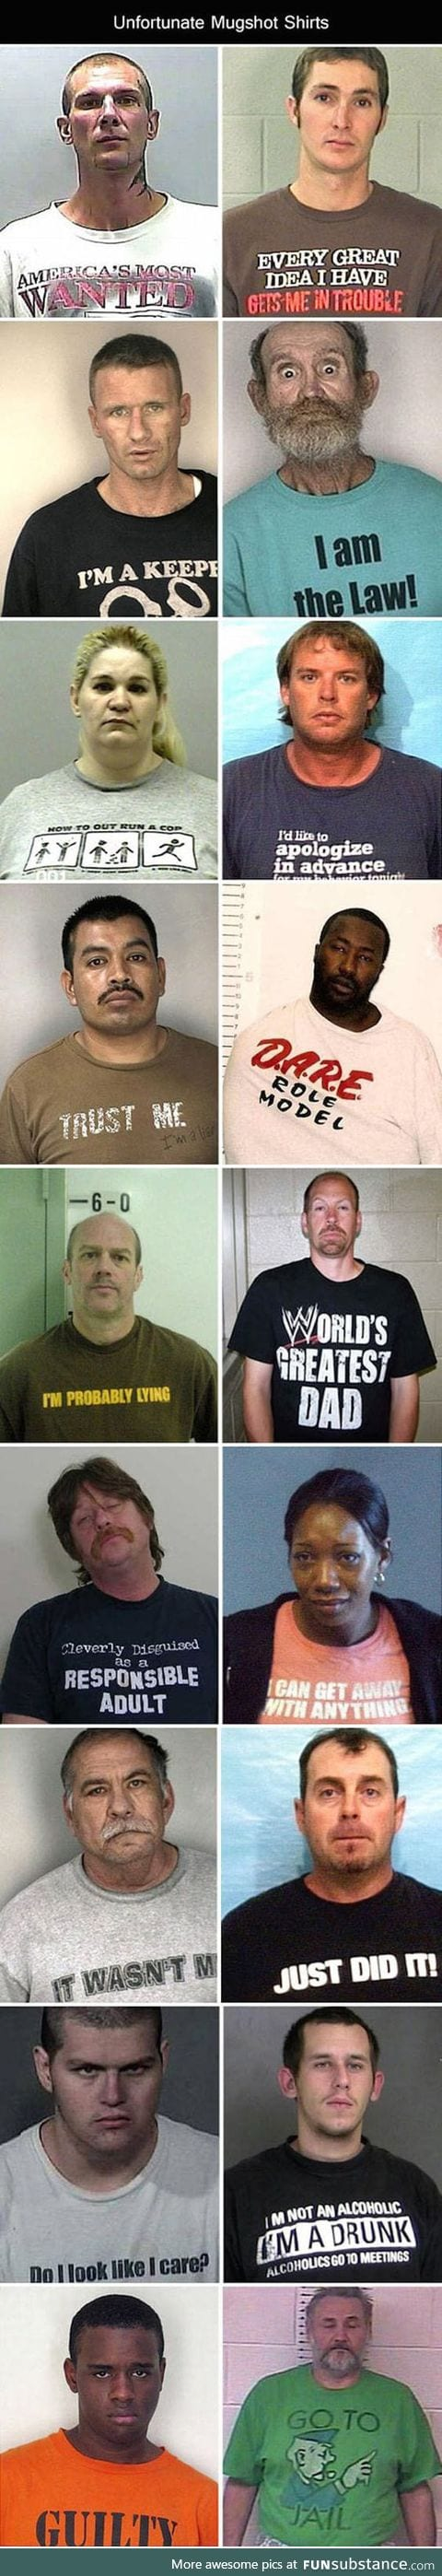 Funny t-shirts at the mugshots